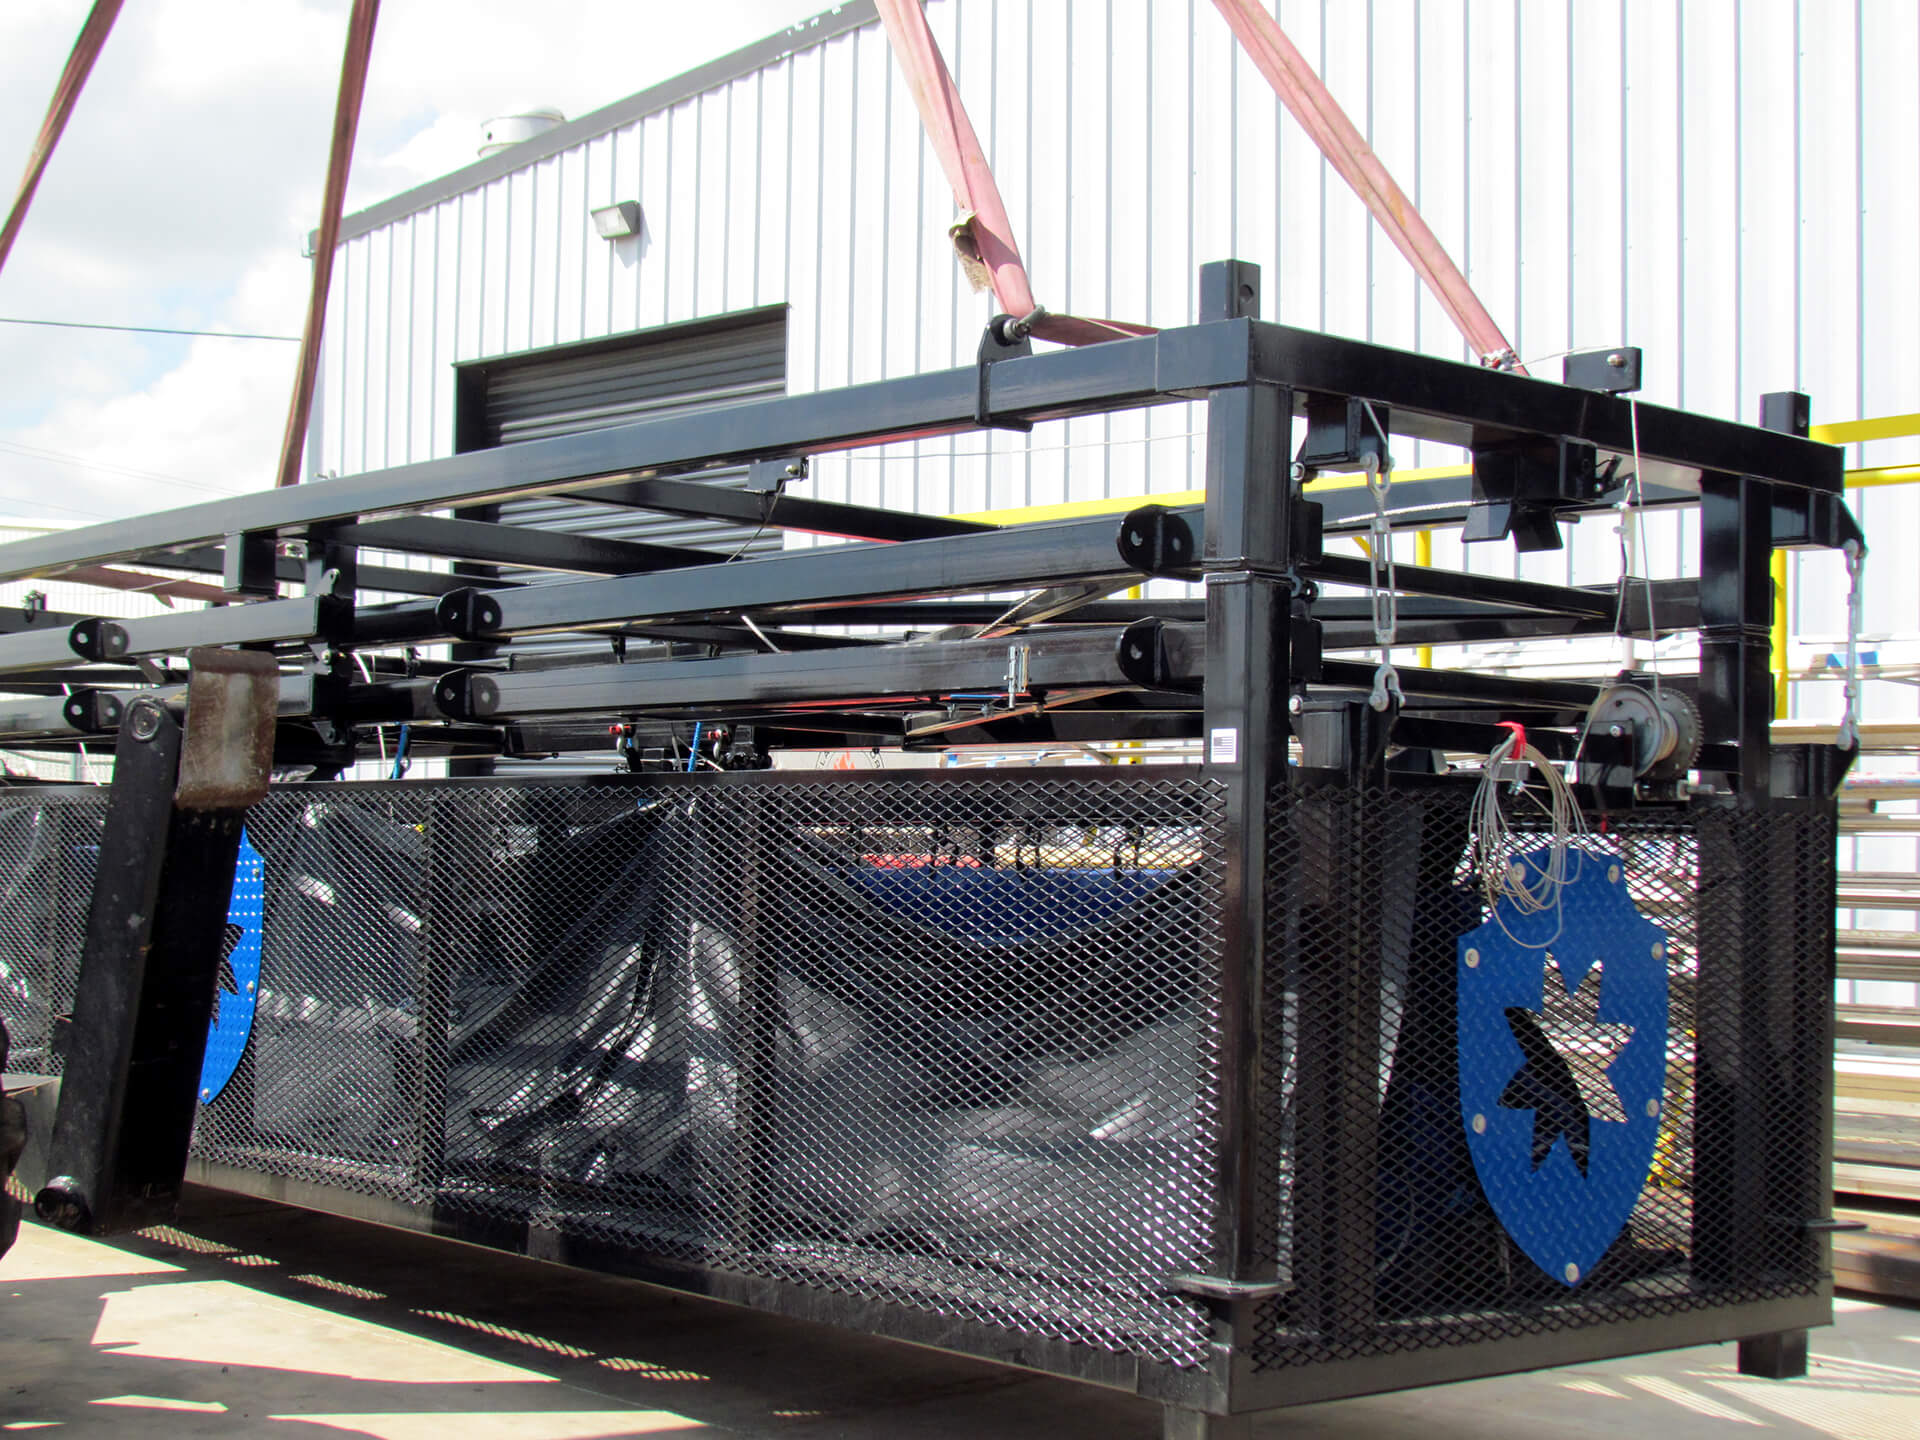 Blast Control DBX Deployable Barrier System retracted and loaded on truck